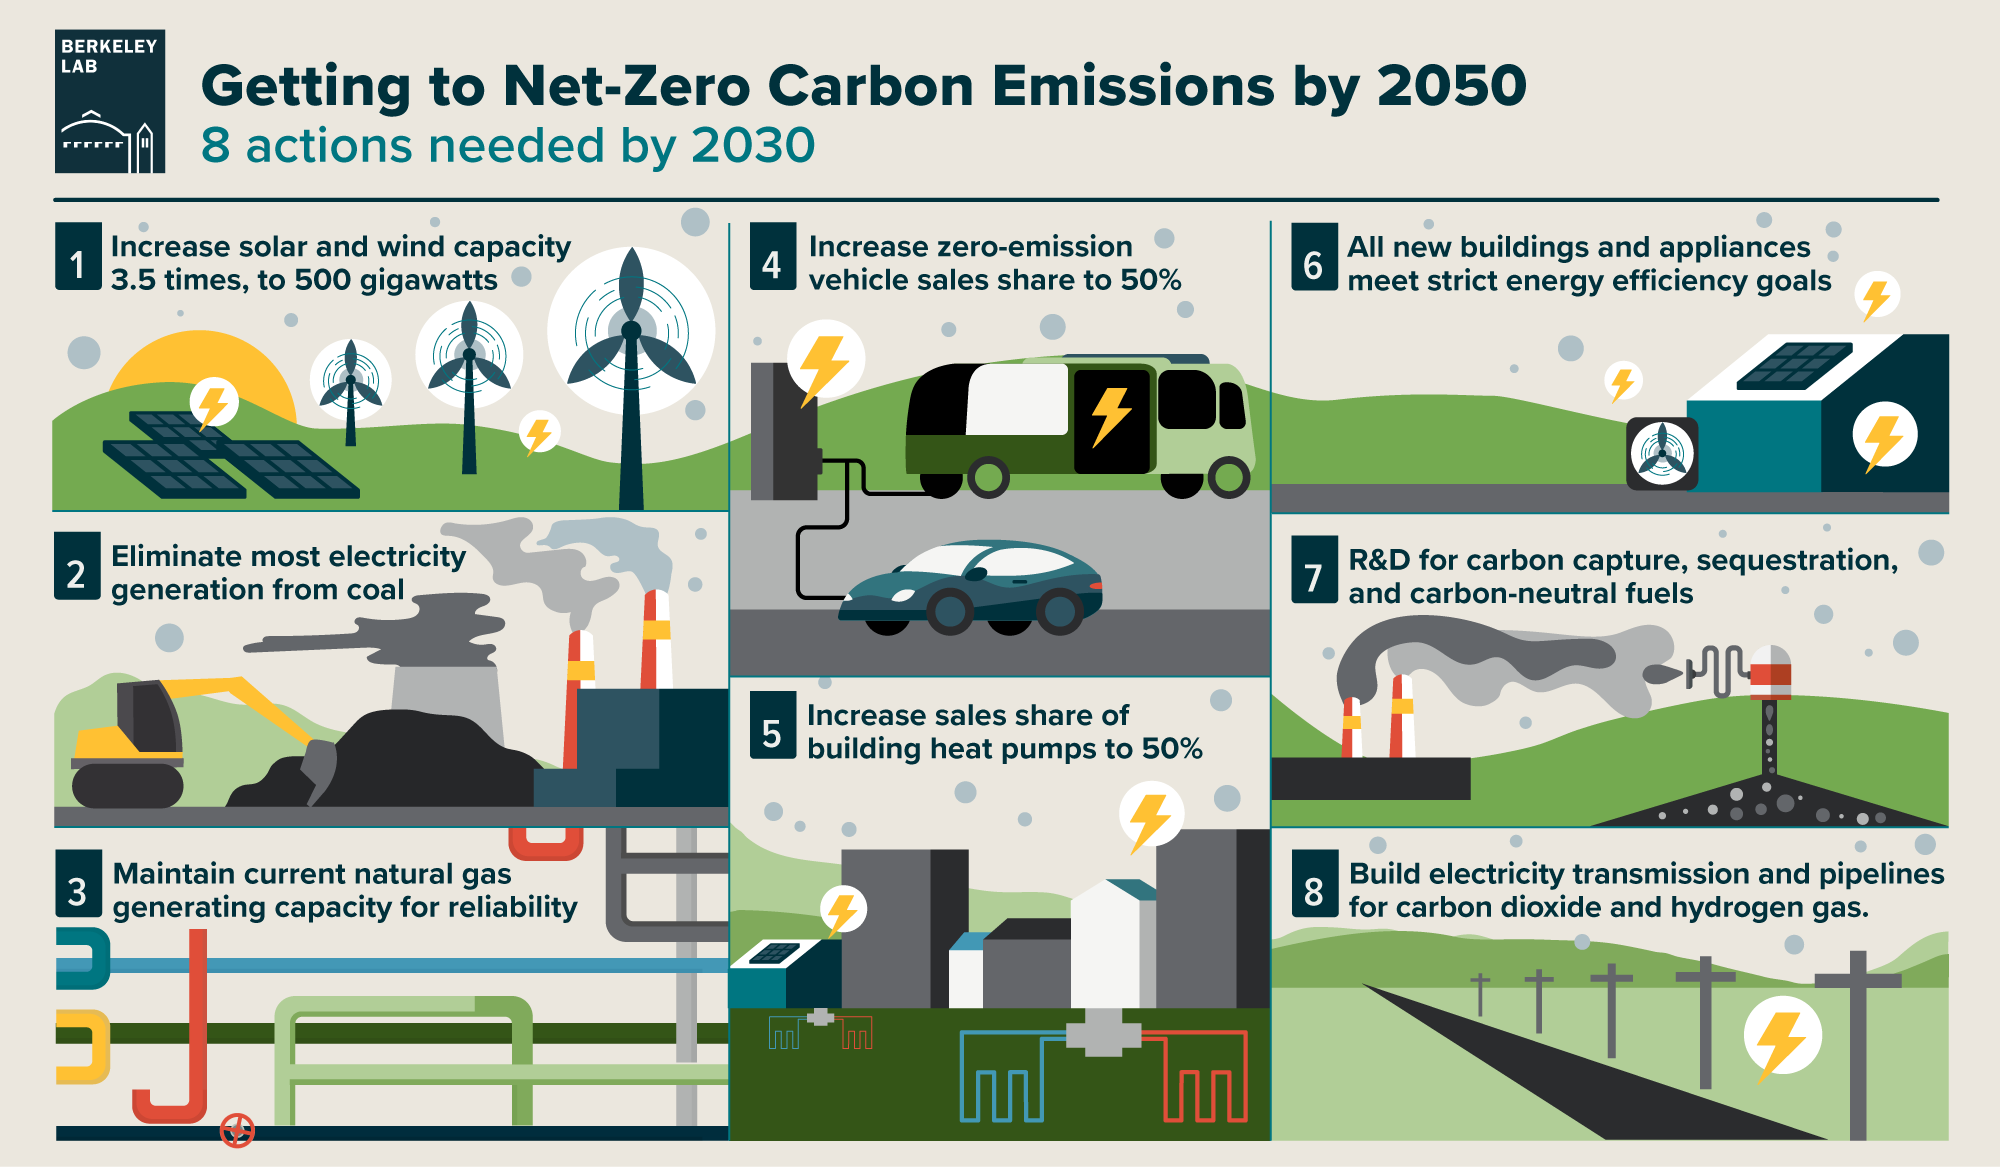 infographic of 8 actions needed by 2030